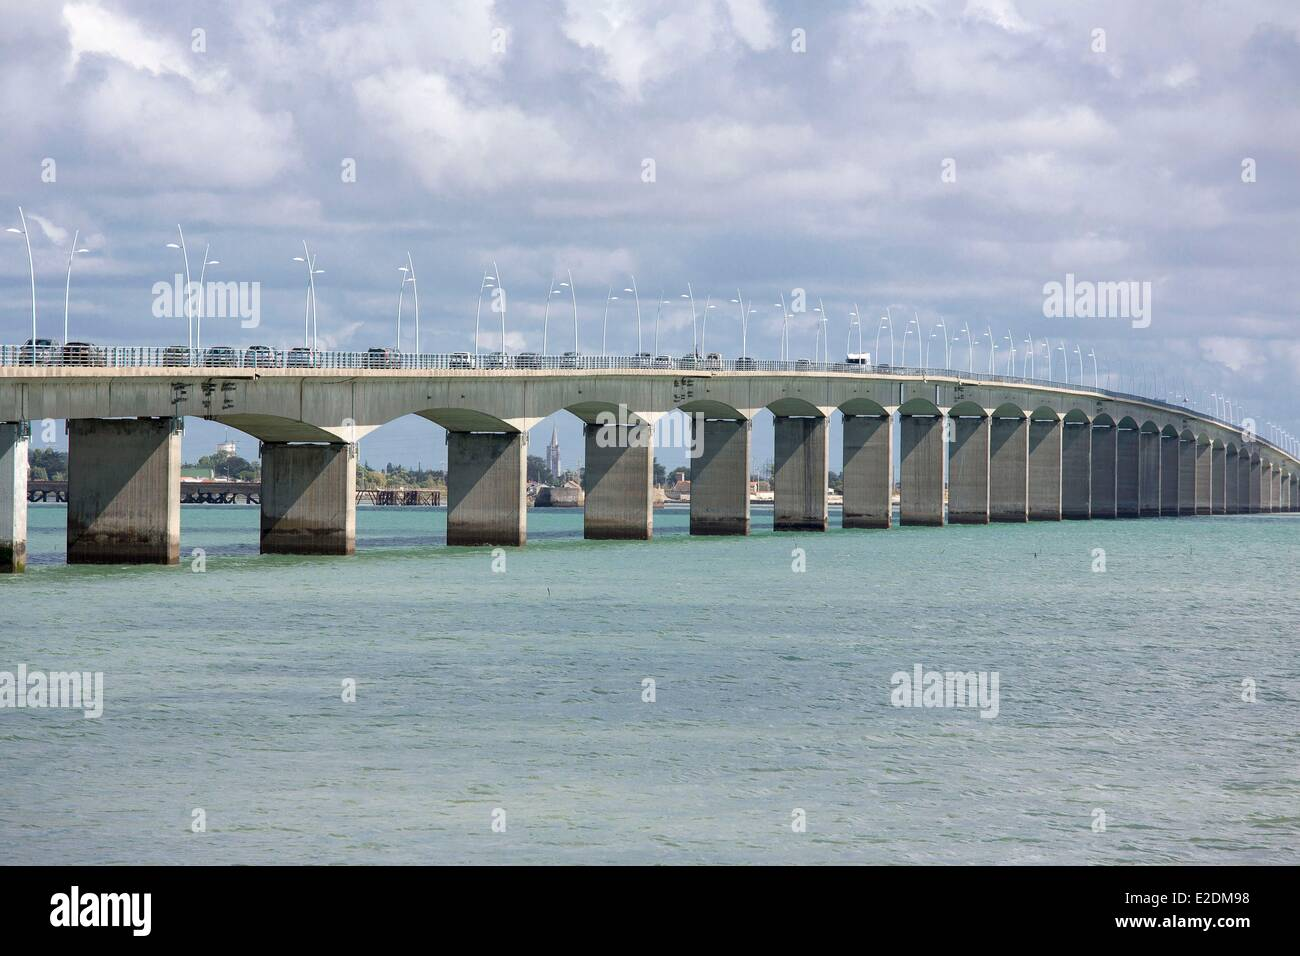 Oleron Bridge Stock Photos Oleron Bridge Stock Images Alamy